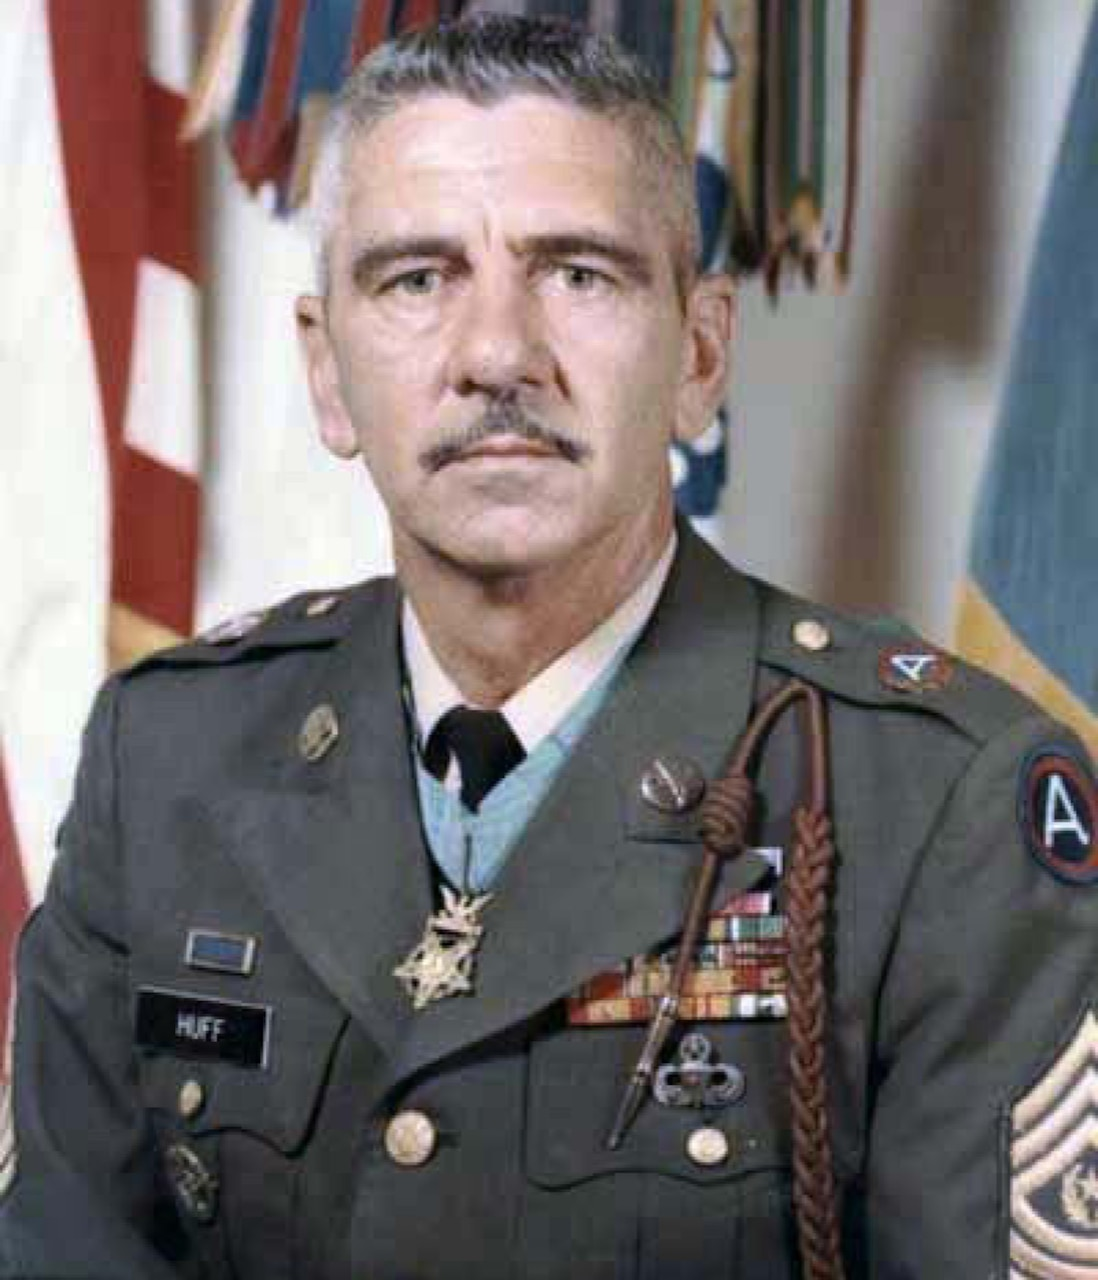 A man in service dress uniform wearing a medal around his neck looks at the camera.